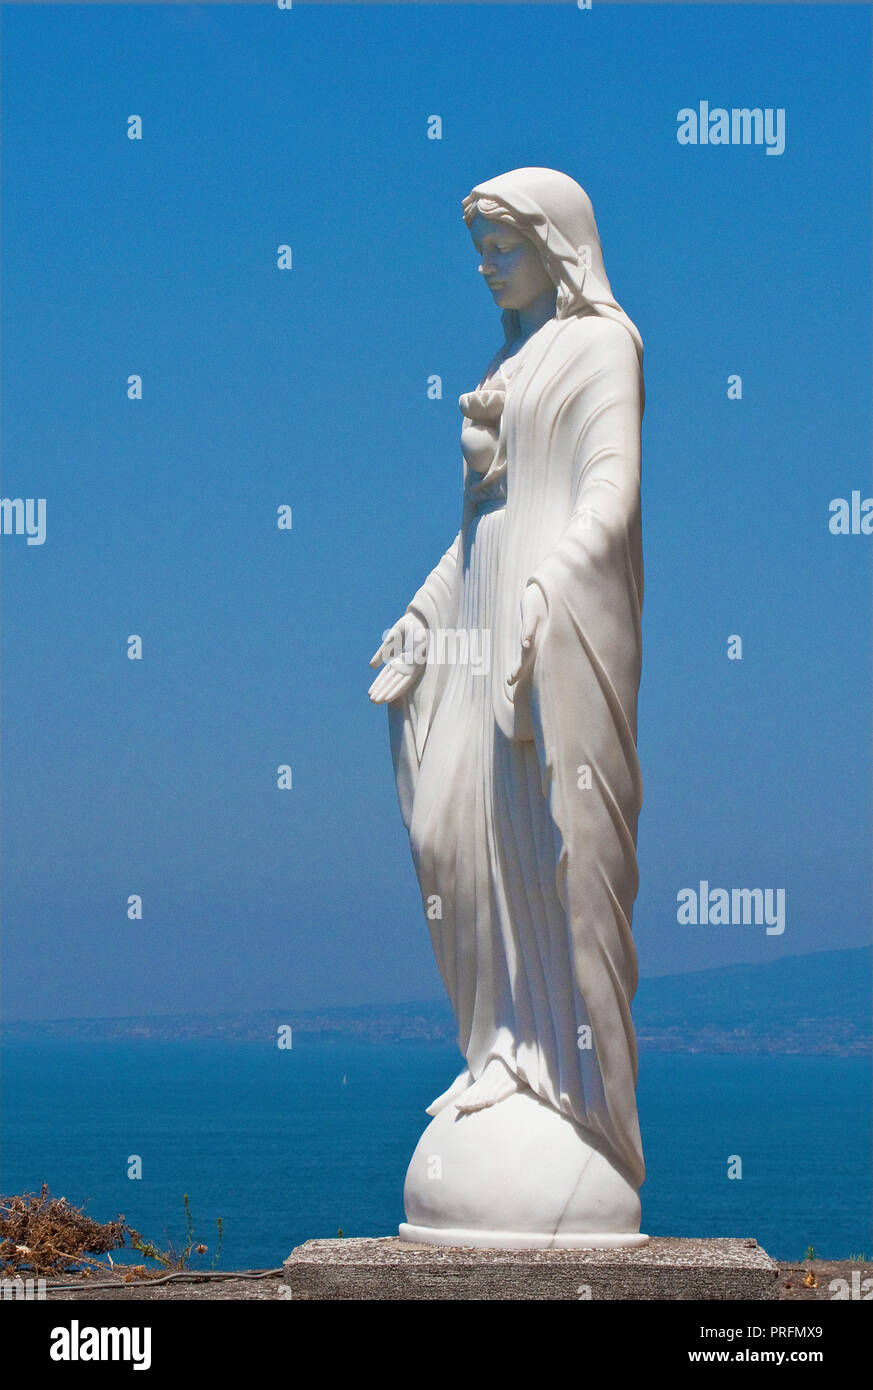 Statue of holy Mary at the church Annunziata, Vico Equense, Peninsula of Sorrento, Gulf of Naples, Campania, Italy - Stock Image